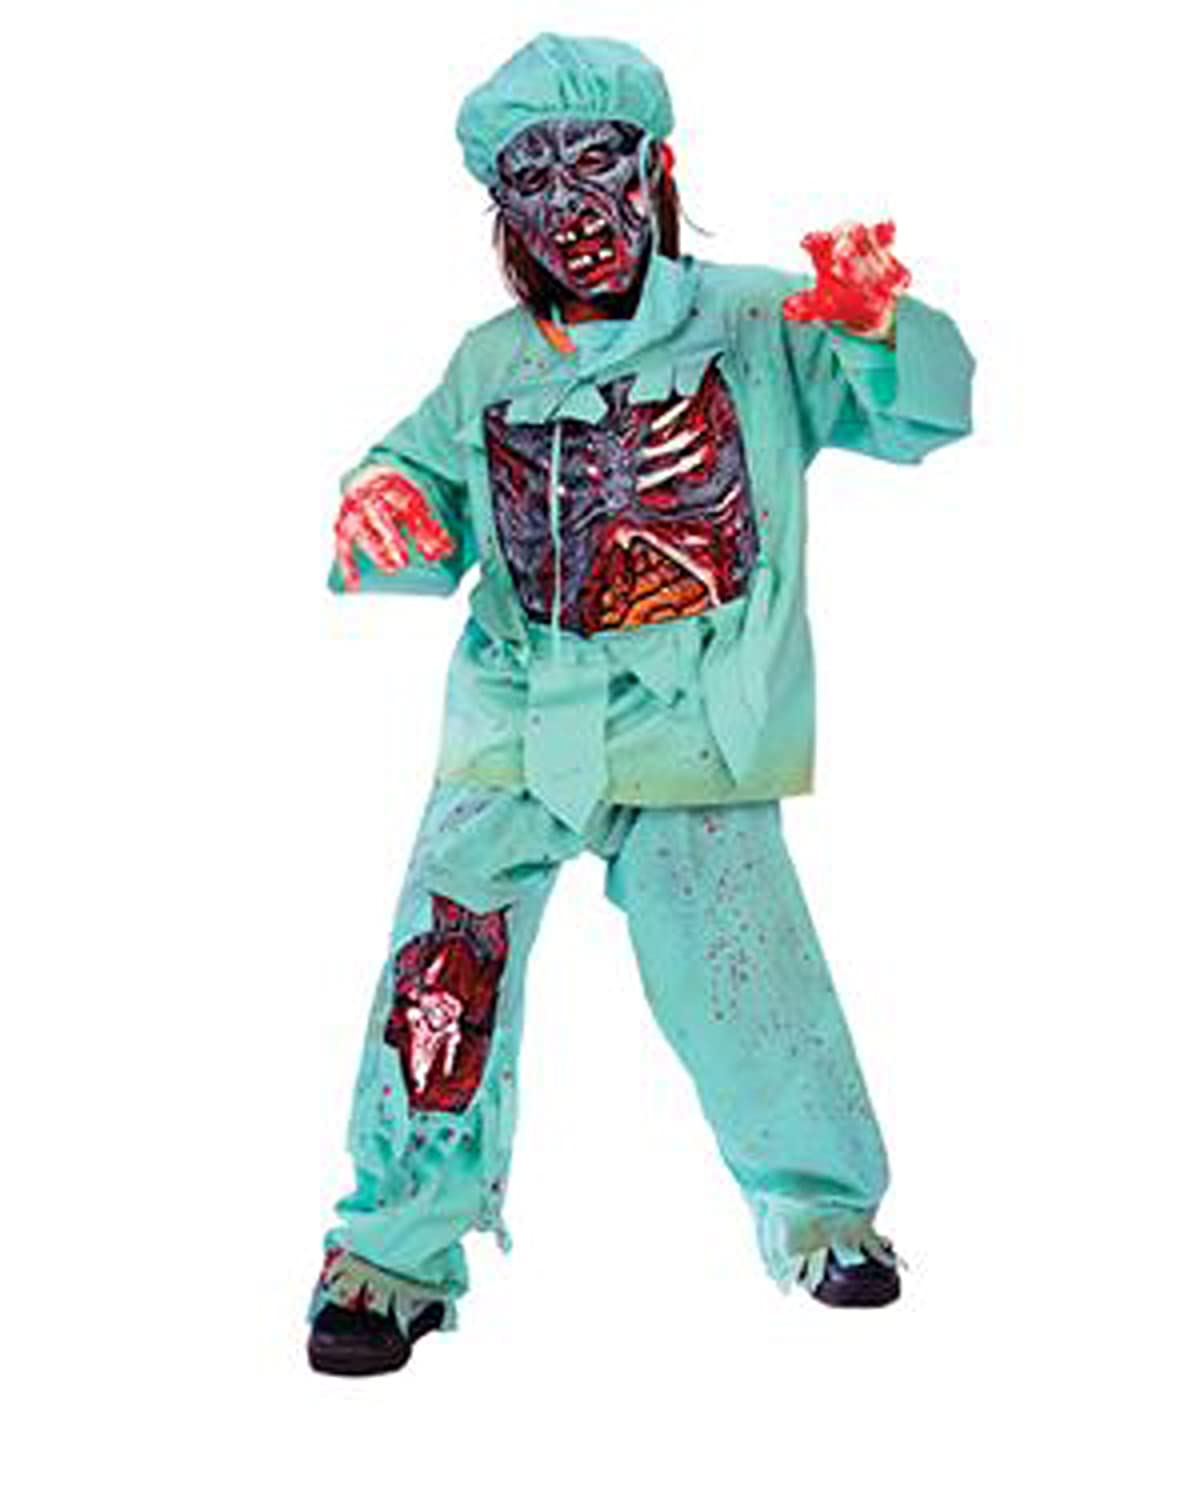 amazoncom zombie doctor child halloween costume size 4 6 toys games - Kids Doctor Halloween Costume